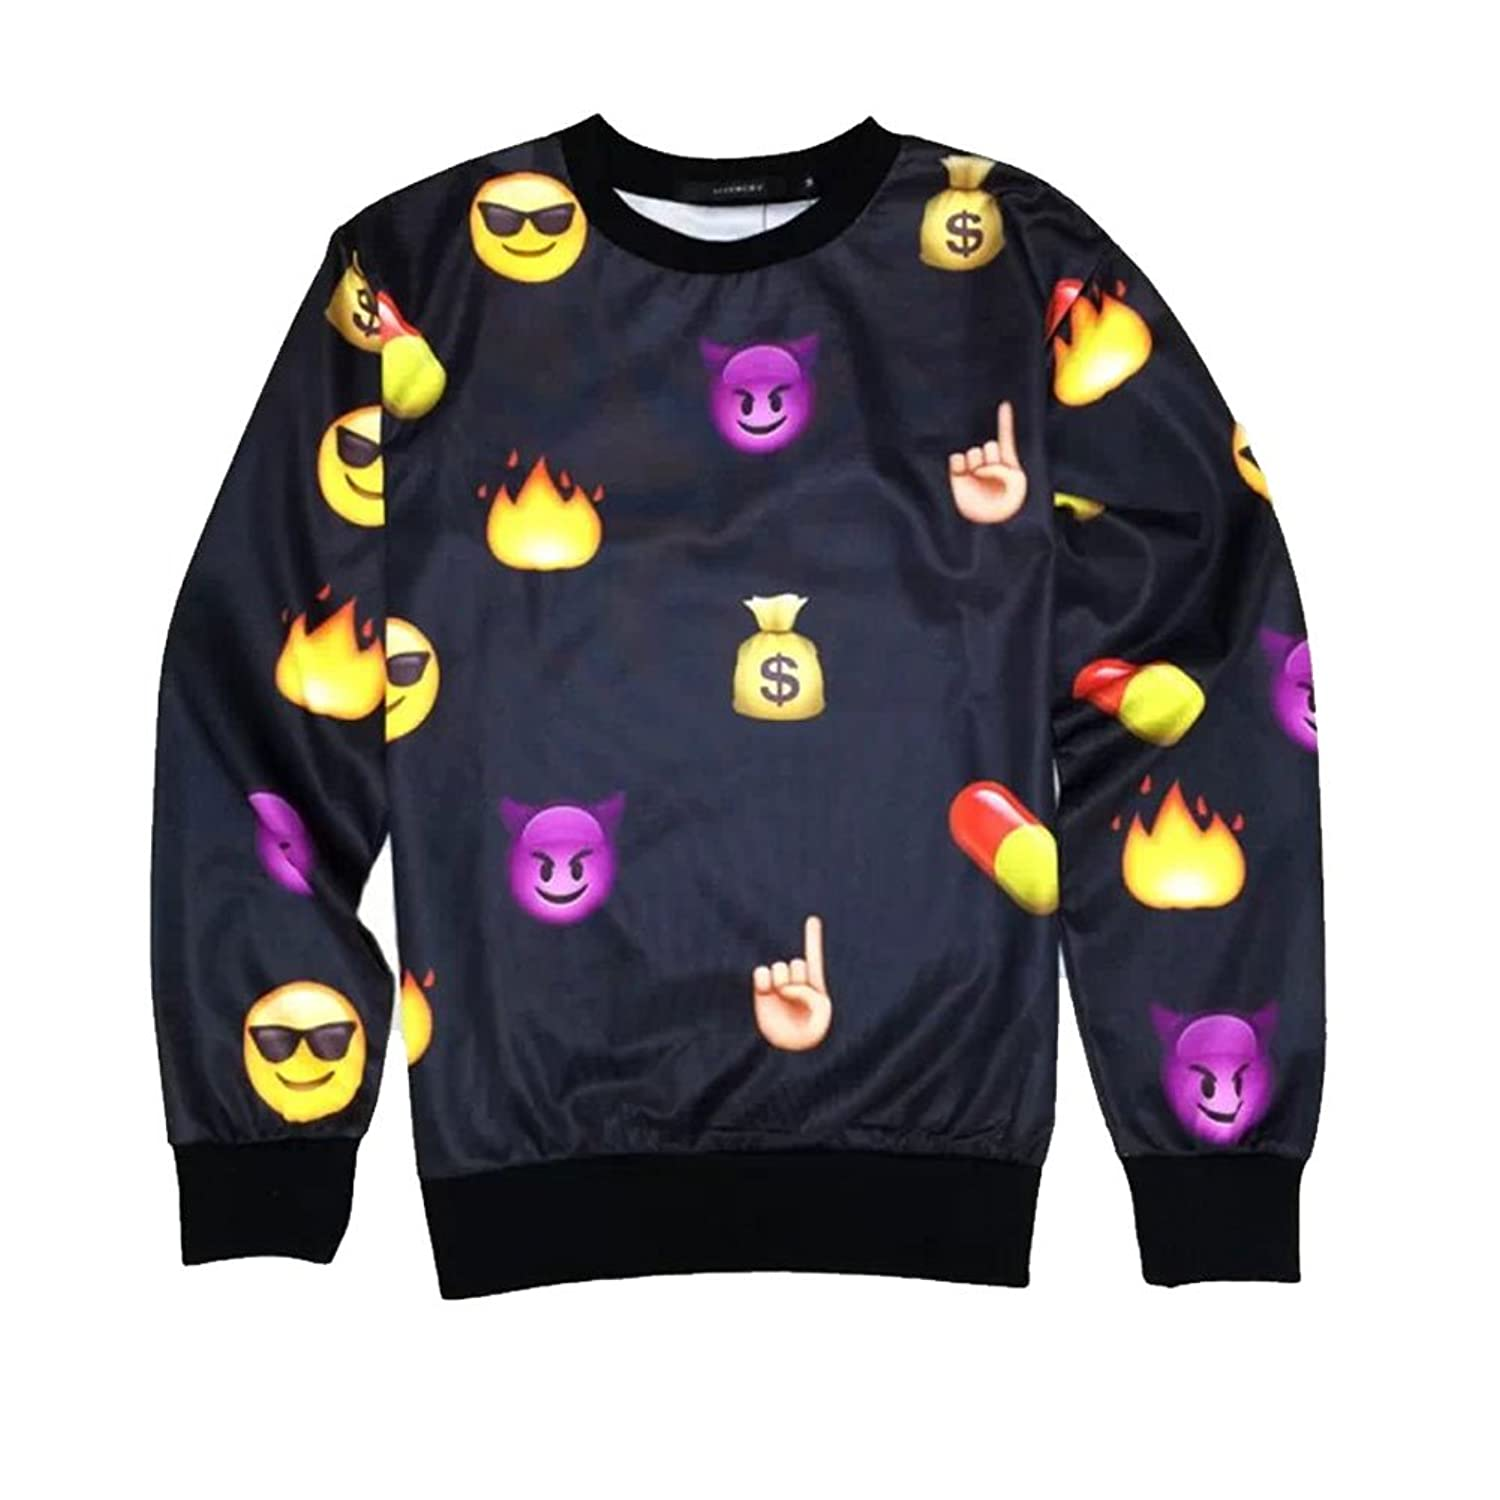 Amazon.com: Women's Black Emoji Sweater printed Cute Cartoon ...